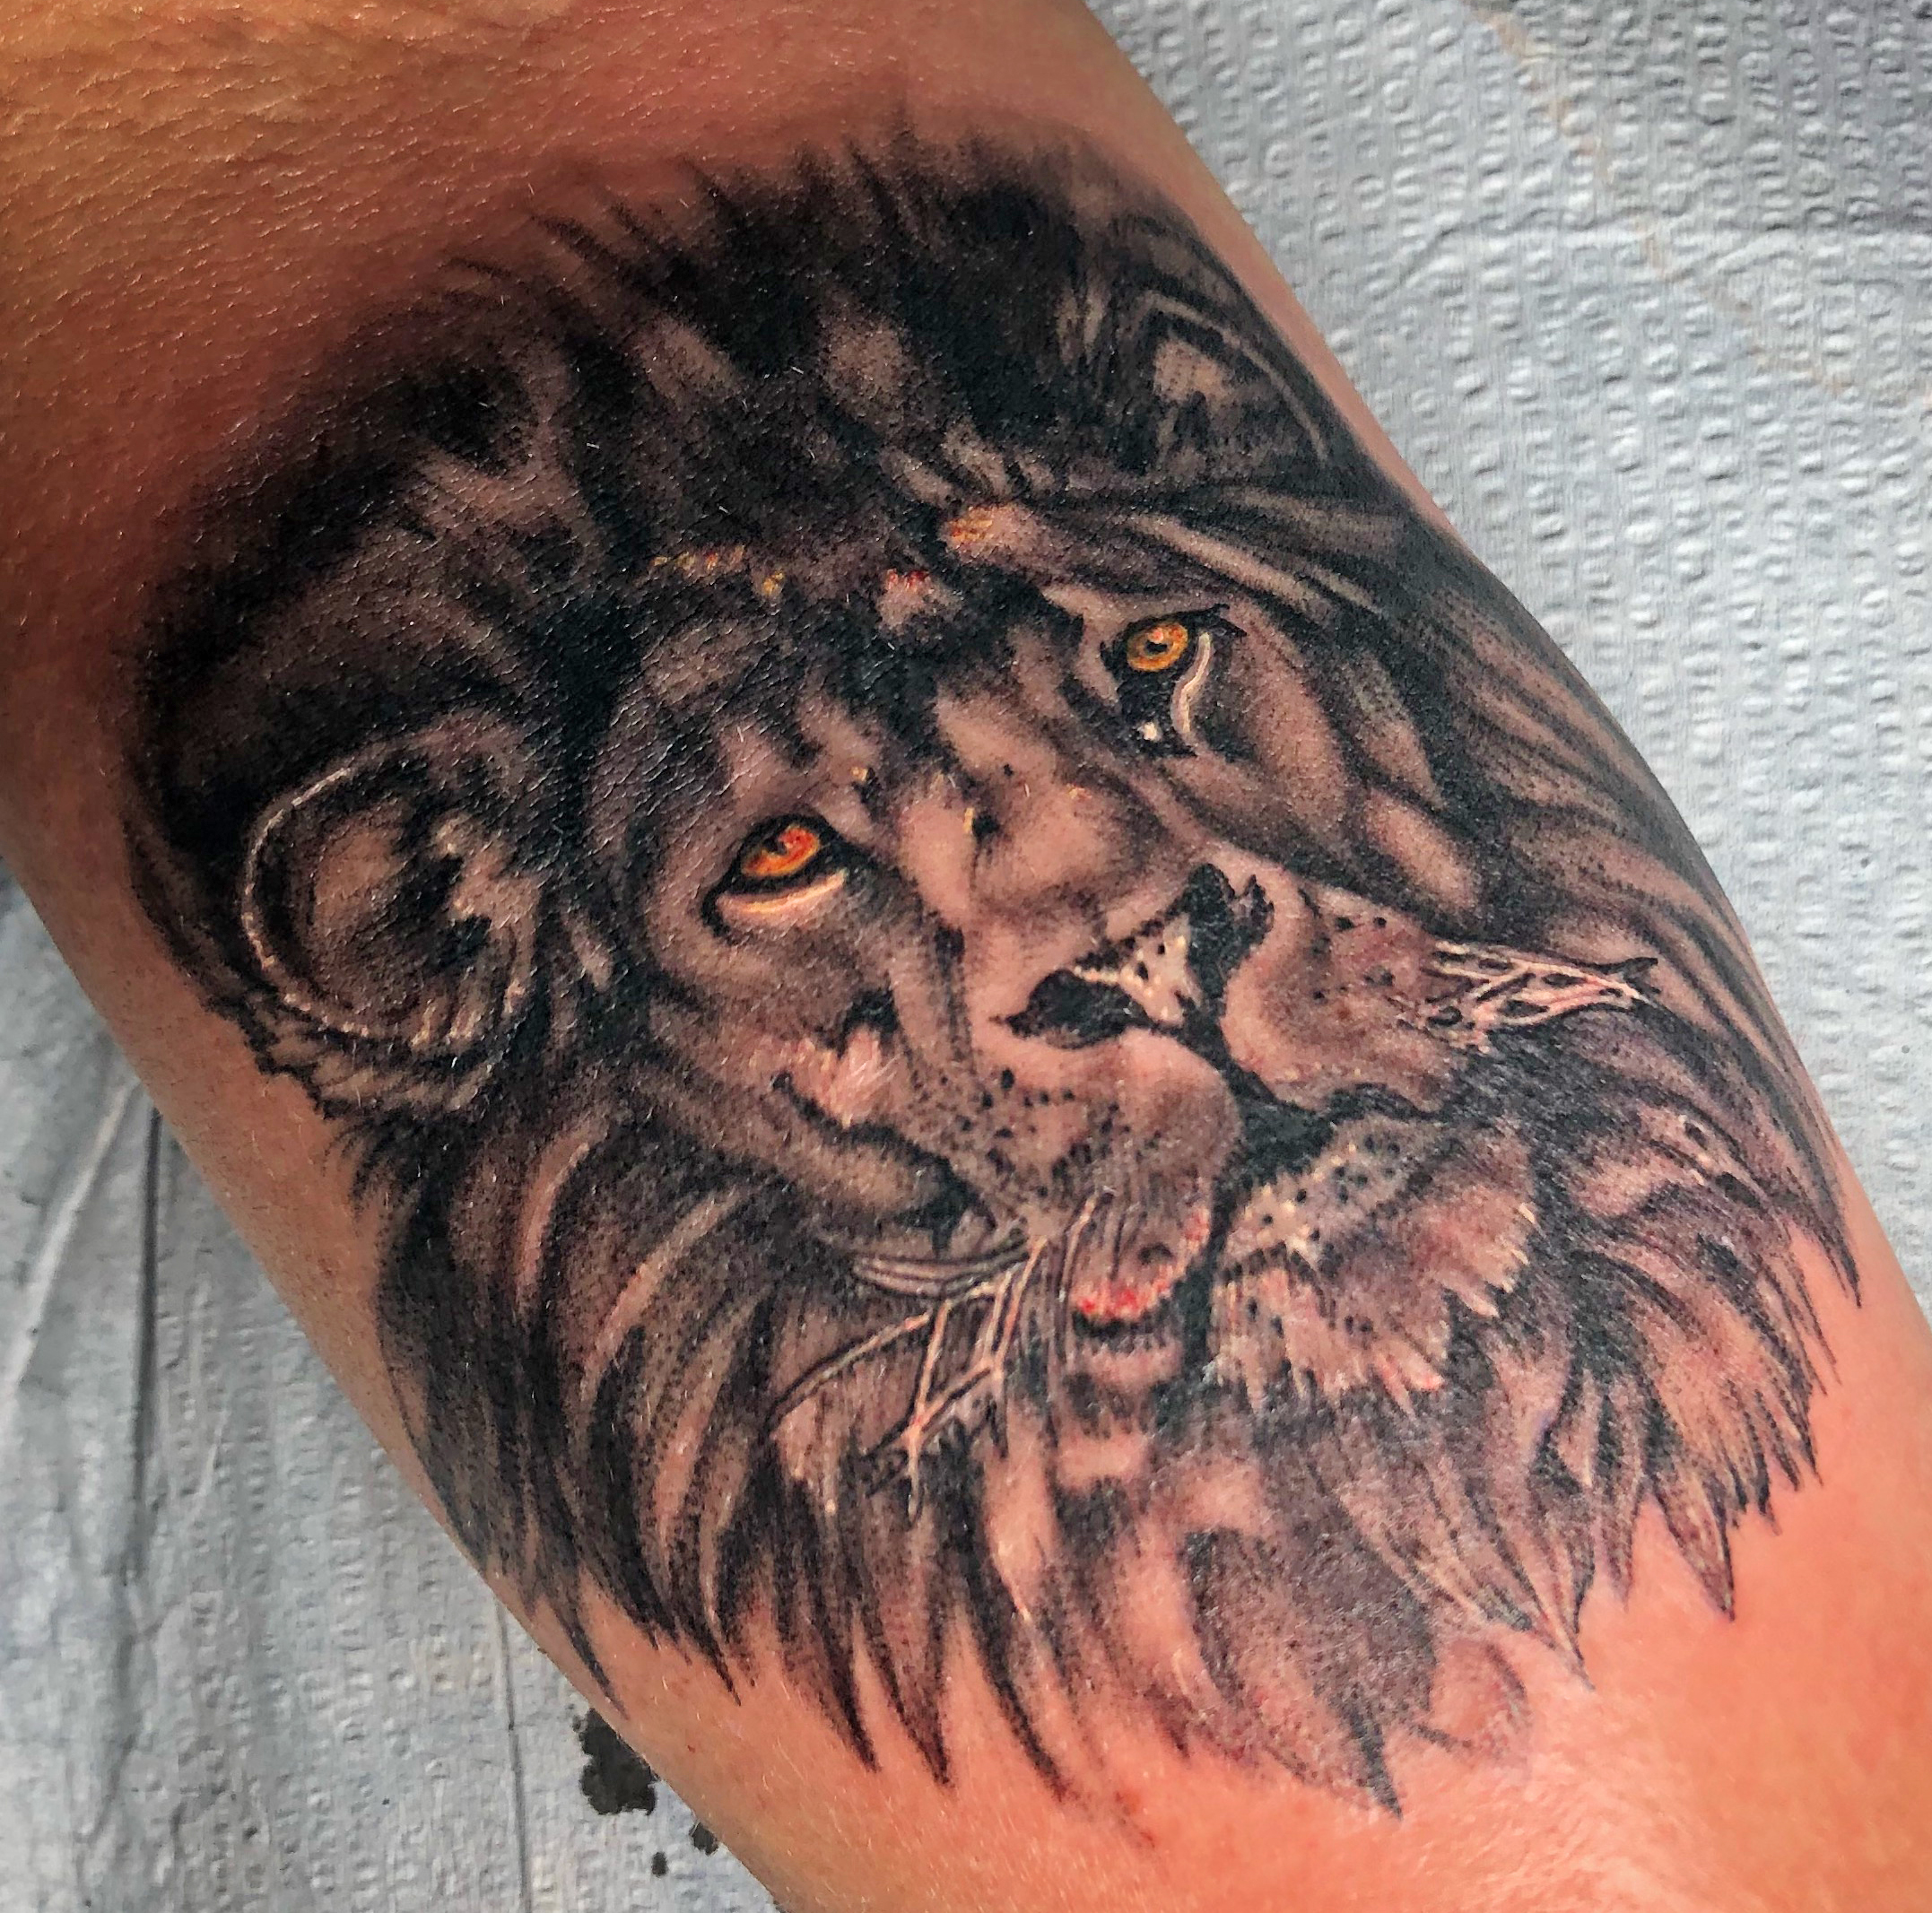 Ryan Boomhower lion tattoo 300dpi.jpg